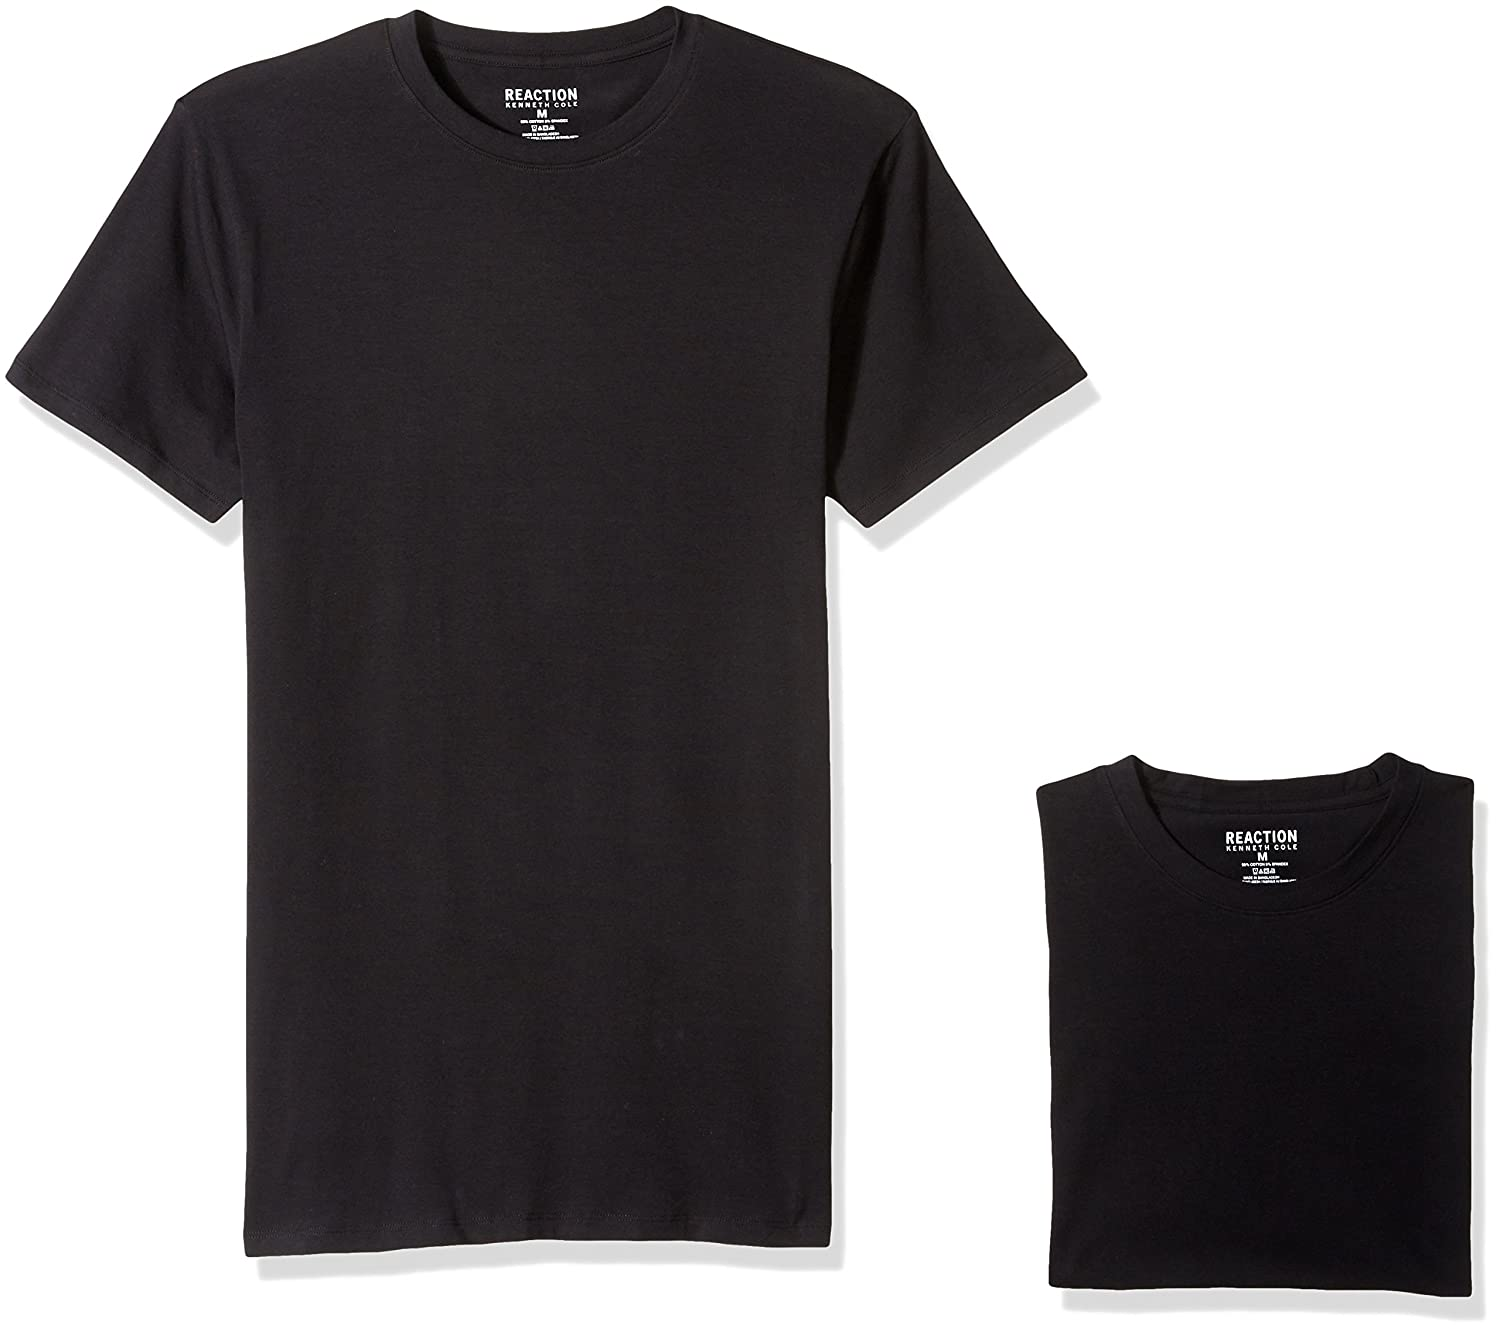 6d119636a6 Kenneth Cole REACTION Men s Crew Neck Tee Set at Amazon Men s Clothing  store